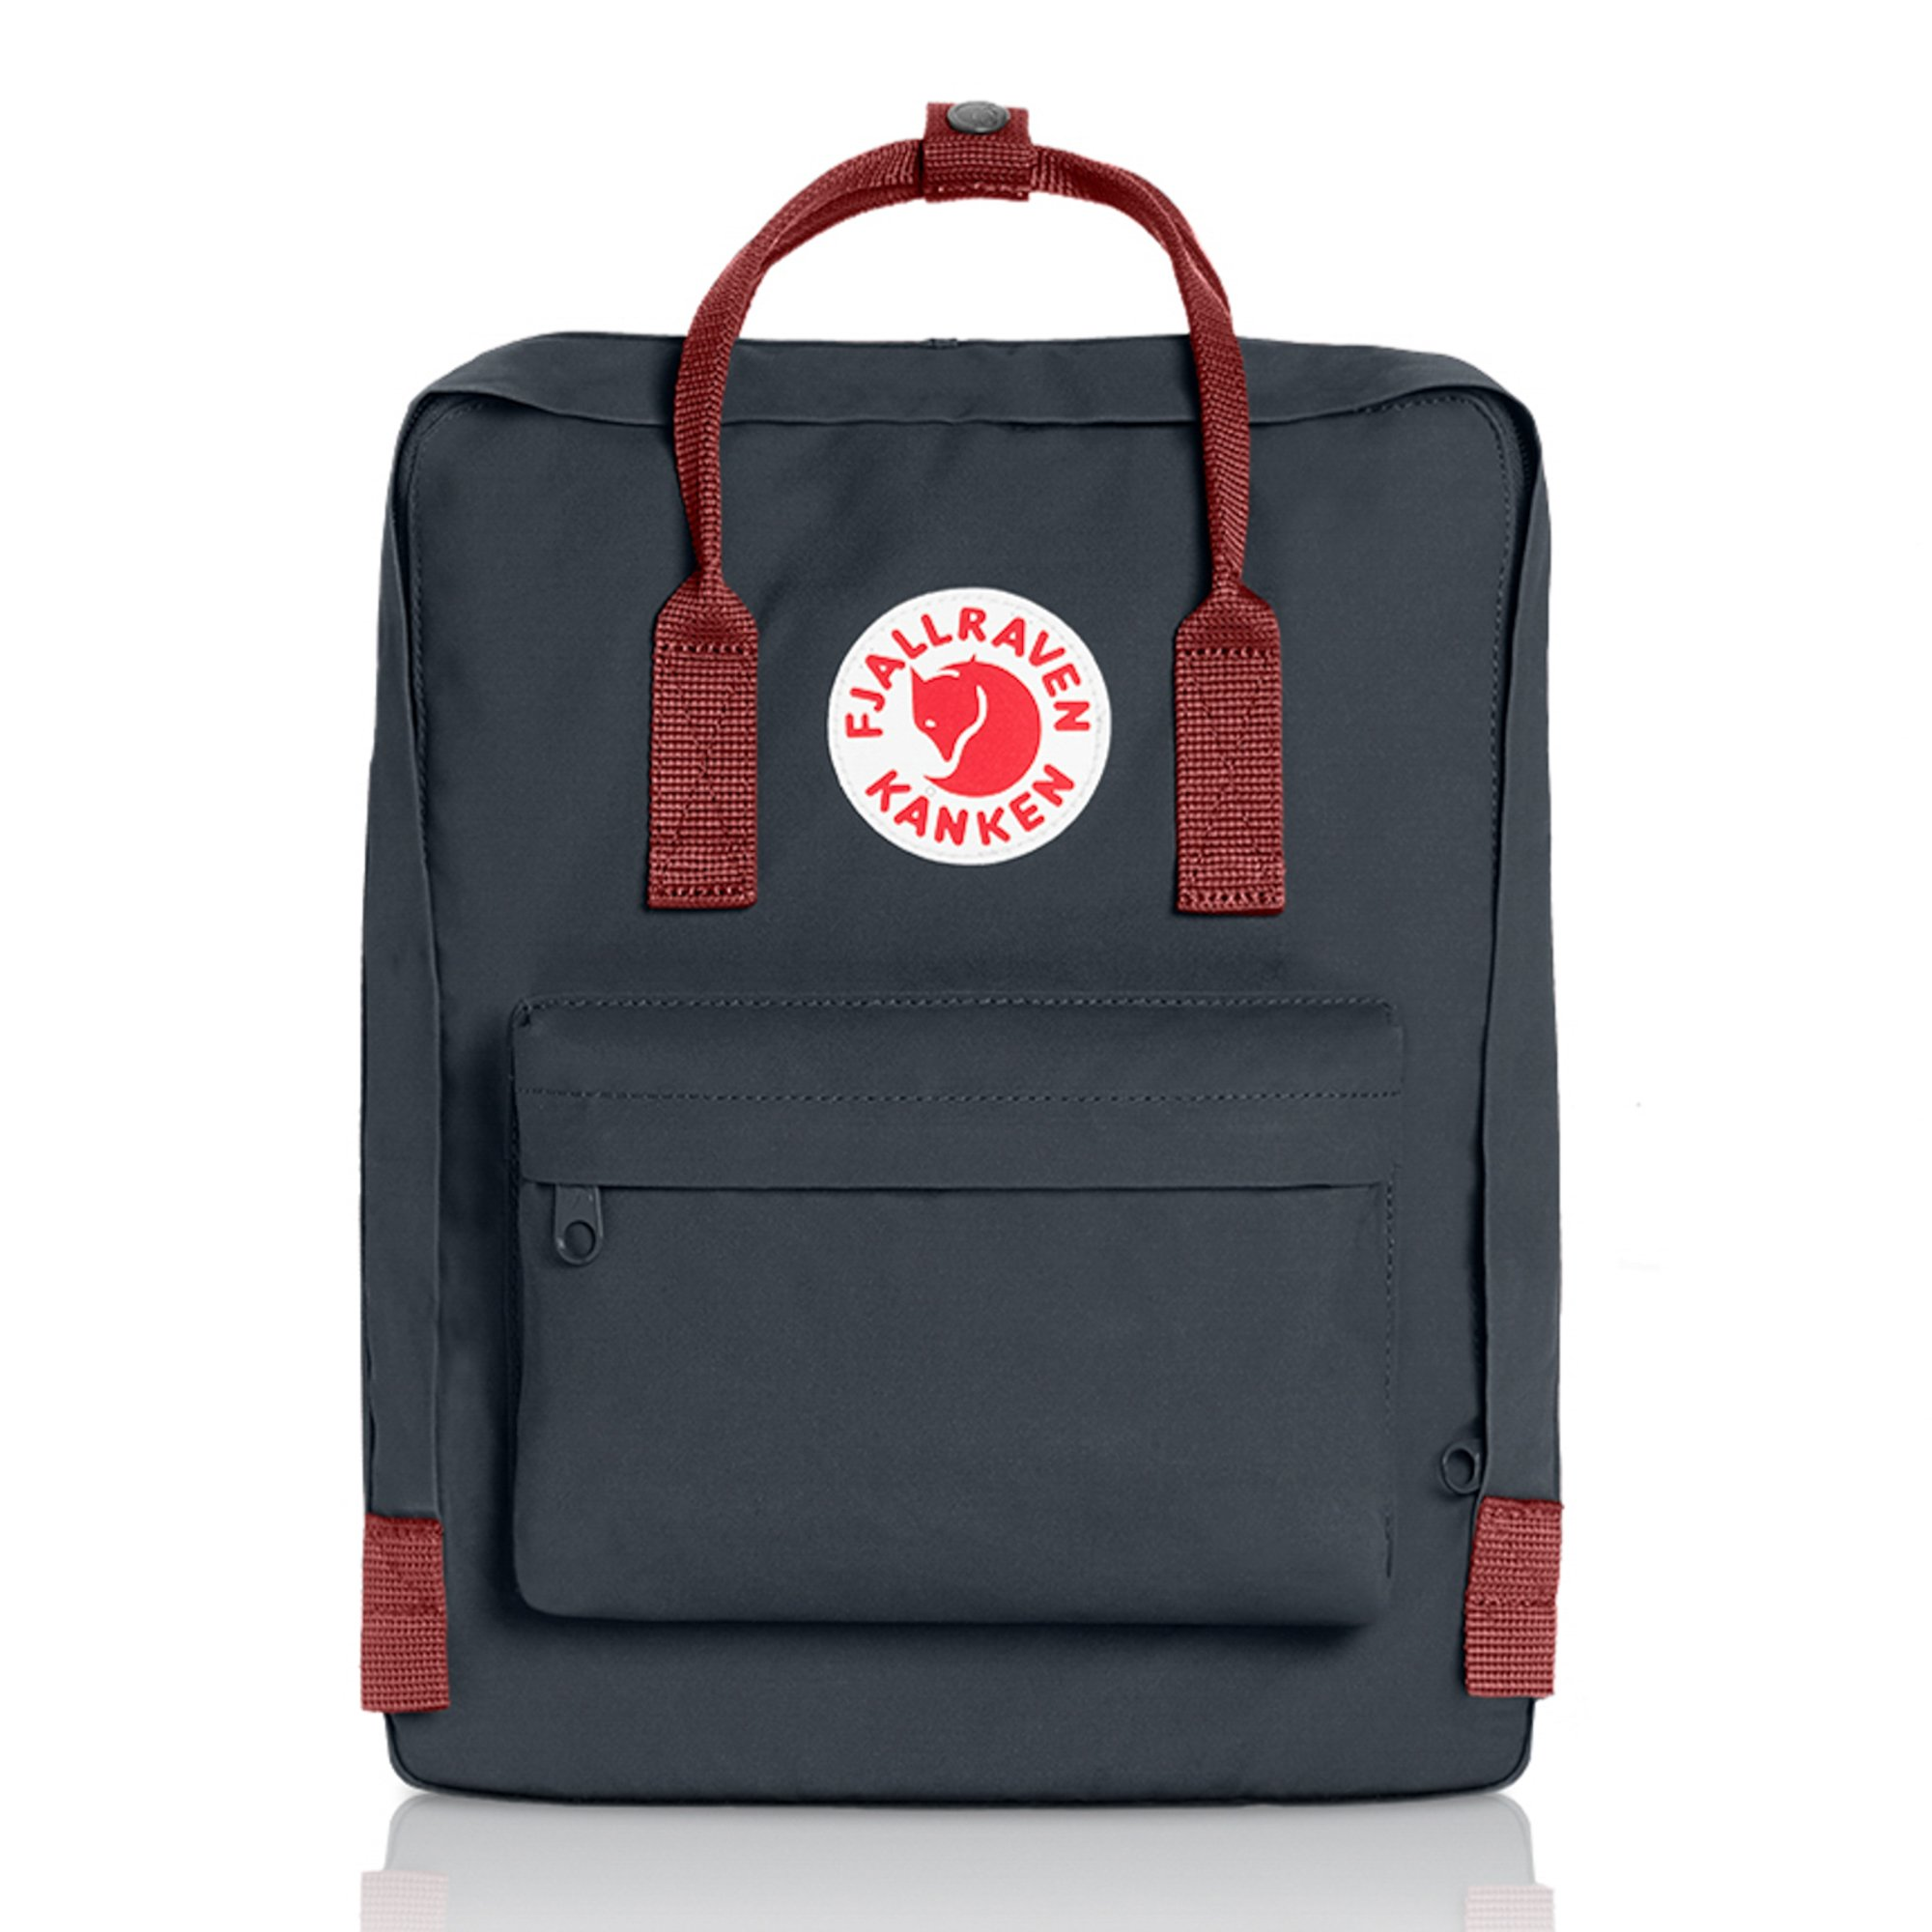 Fjallraven - Kanken Classic Pack, Heritage and Responsibility Since 1960, One Size,Black/Ox Red